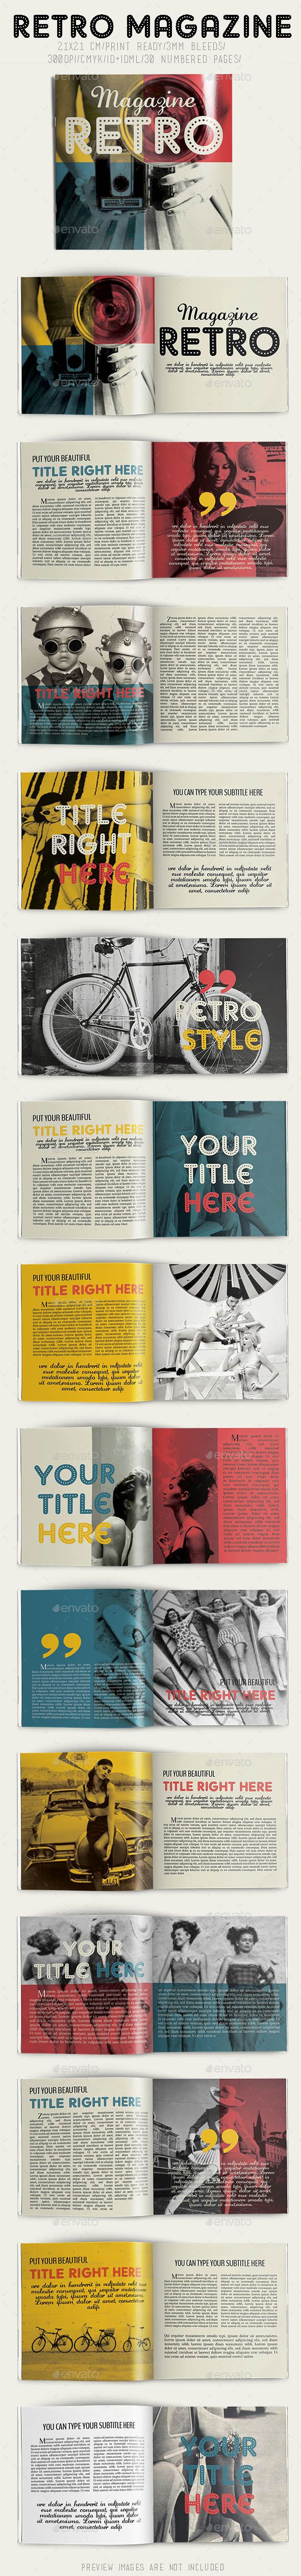 Retro Magazine InDesign INDD Letter O Available Here